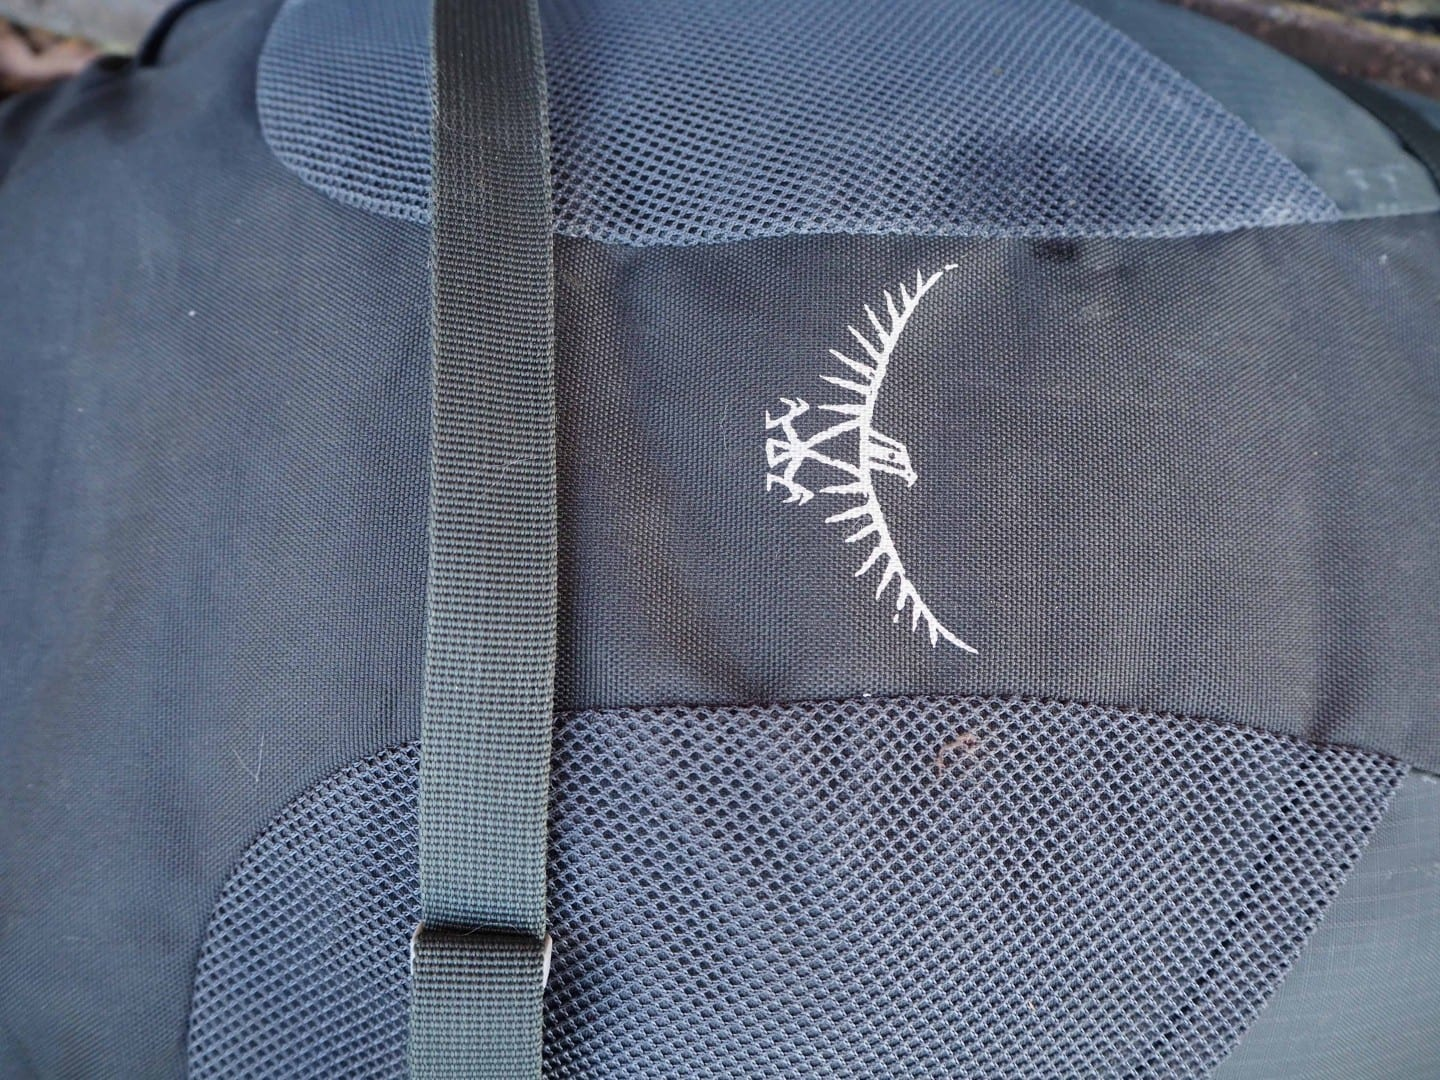 OSPREY FARPOINT 40 BACKPACK REVIEW